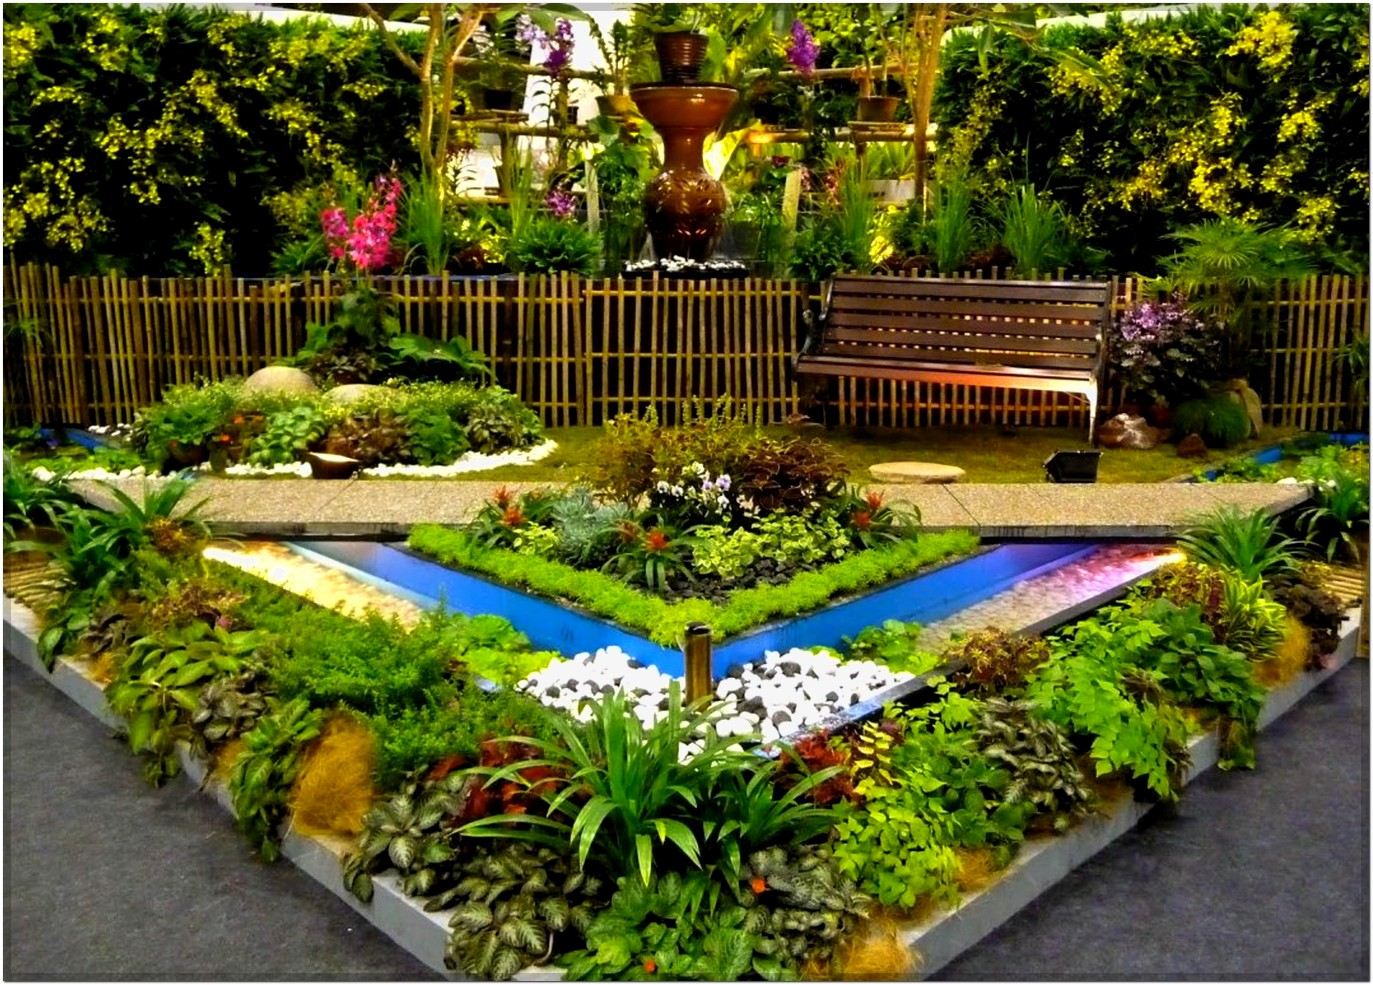 Some helpful small garden ideas for the diy project for for Small garden ideas